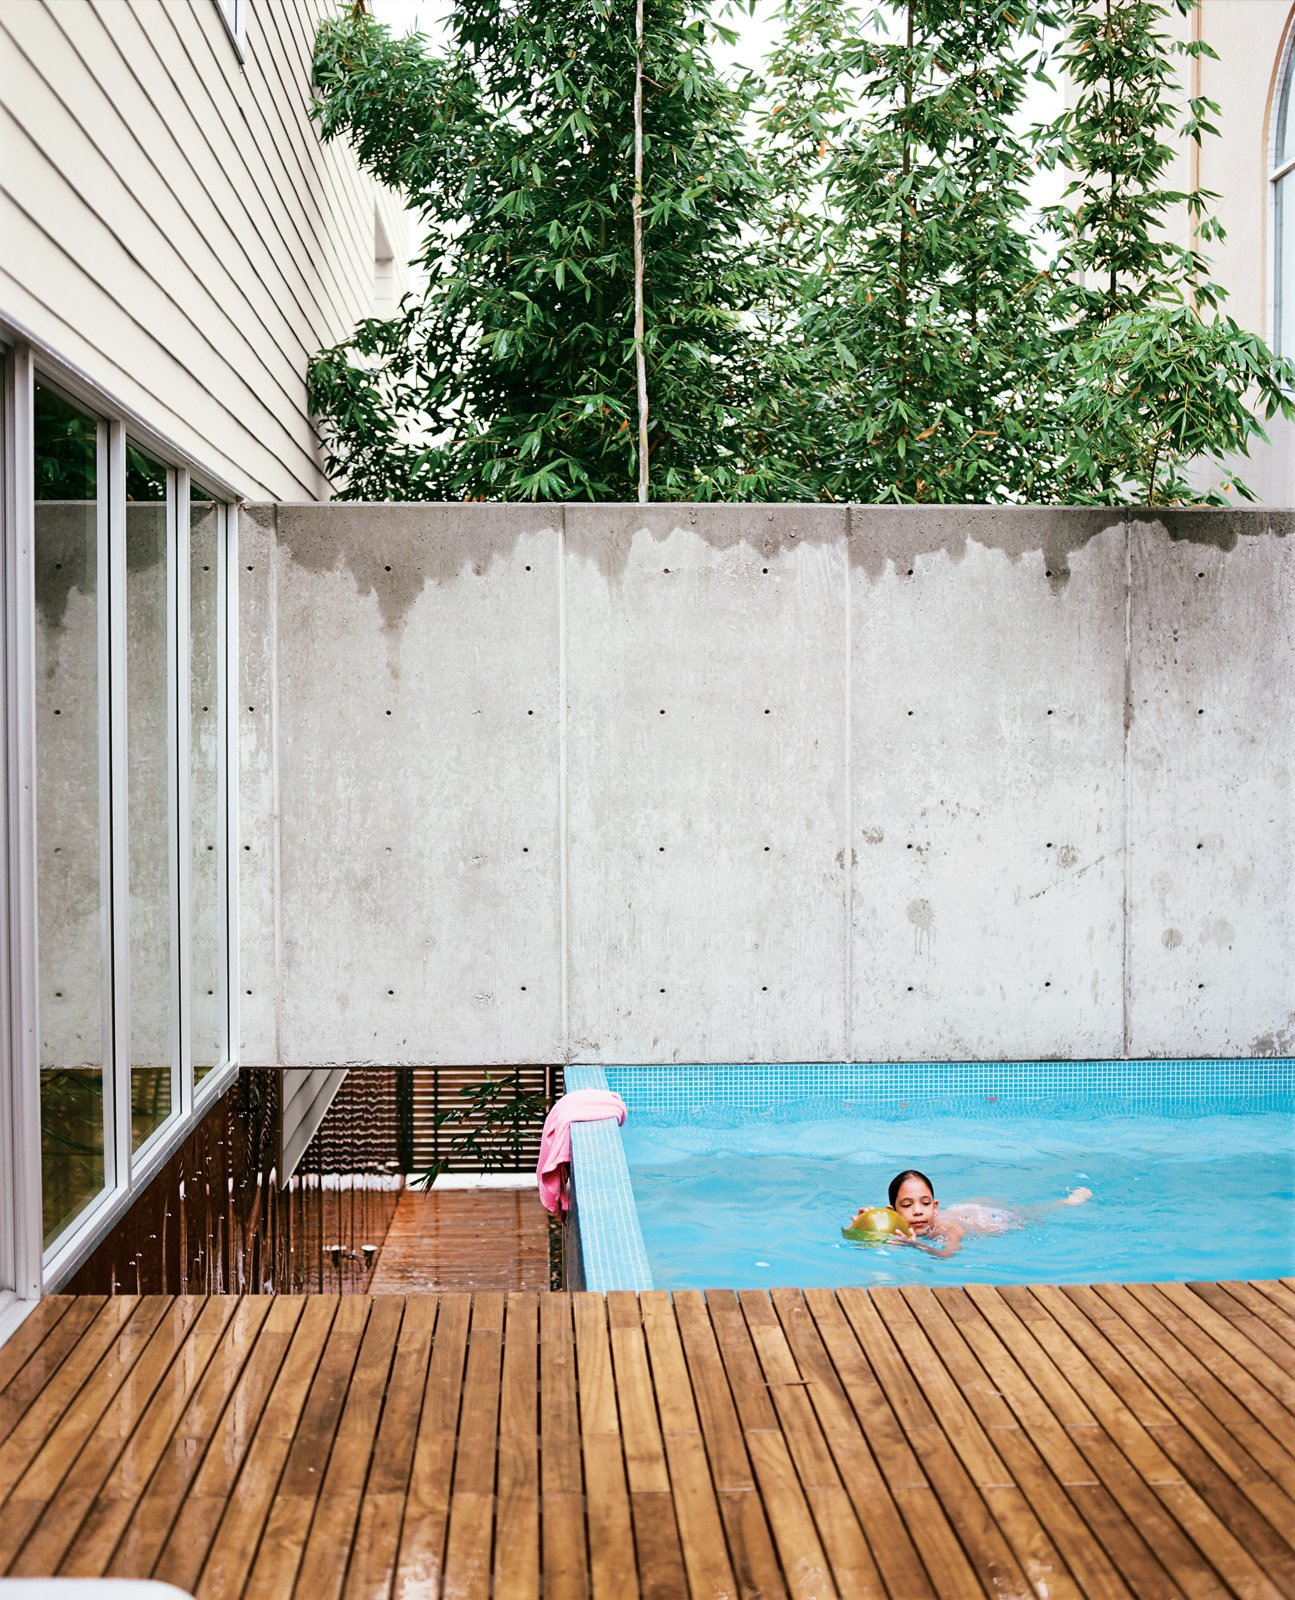 Outdoor and Small Pools, Tubs, Shower The small pool at the top of the landing provides the family with a place to cool off.  30+ Best Modern Fences by William Lamb from Modern in Tijuana